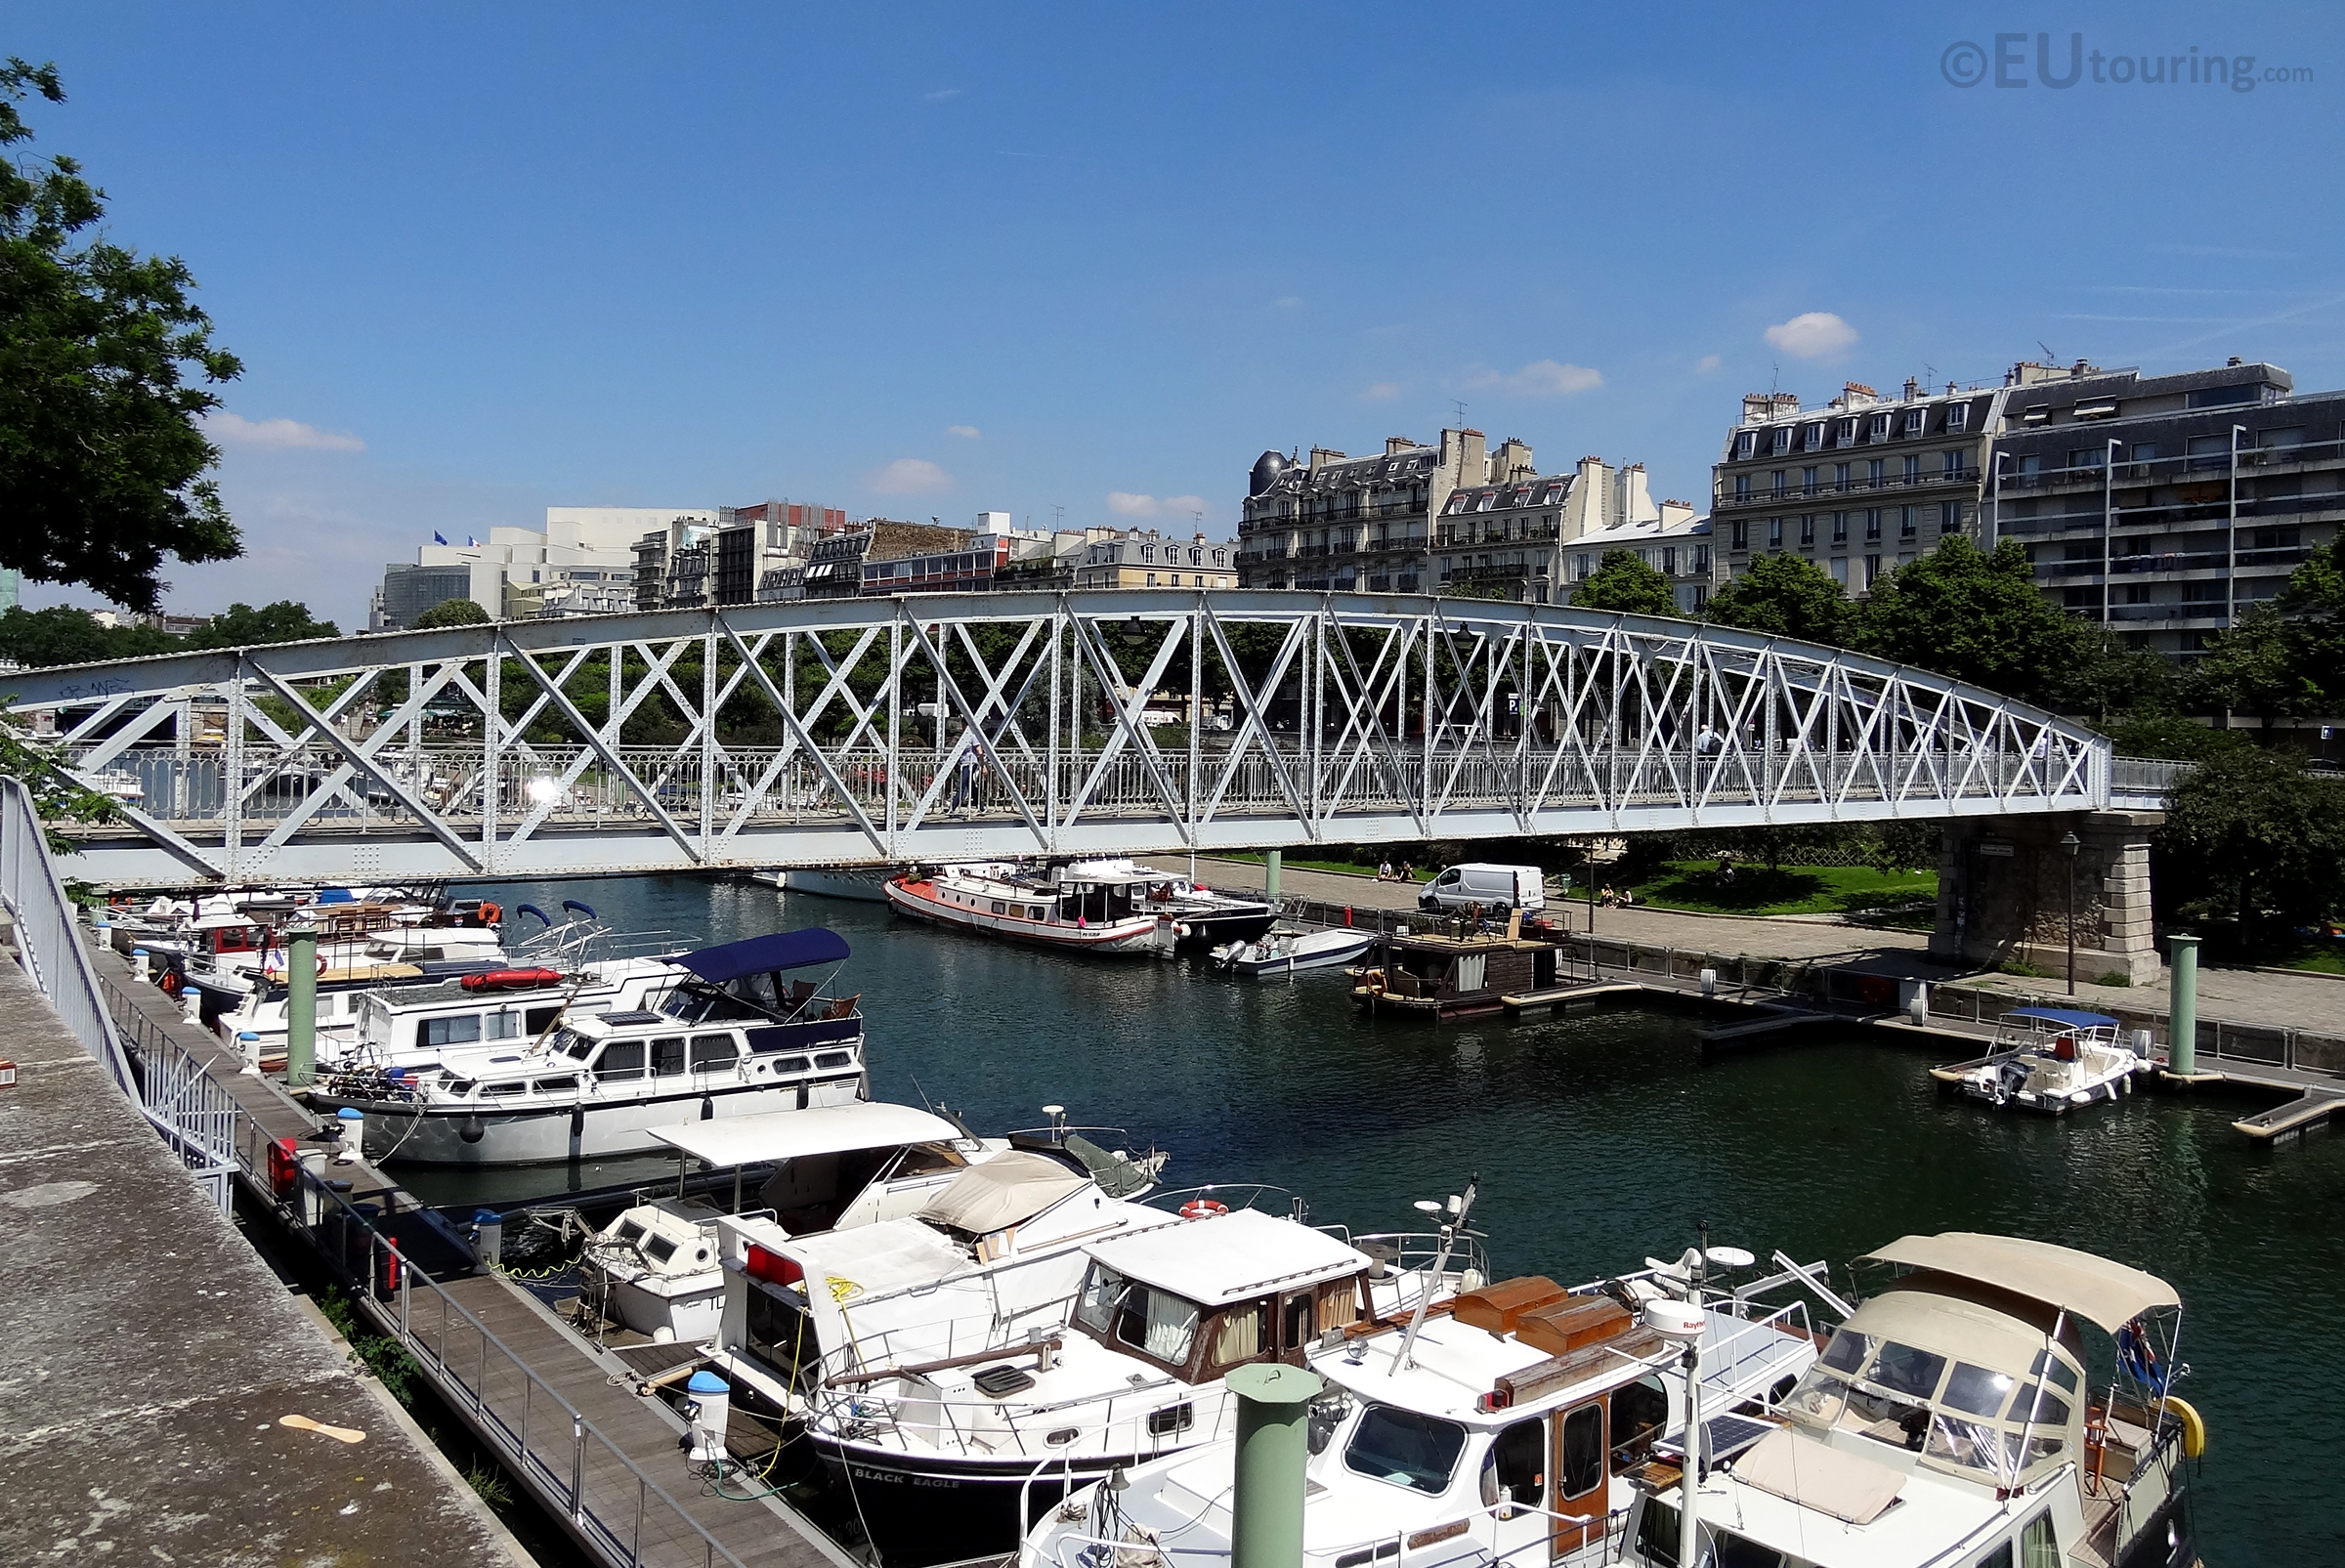 Boats beneath the Passerelle Mornay